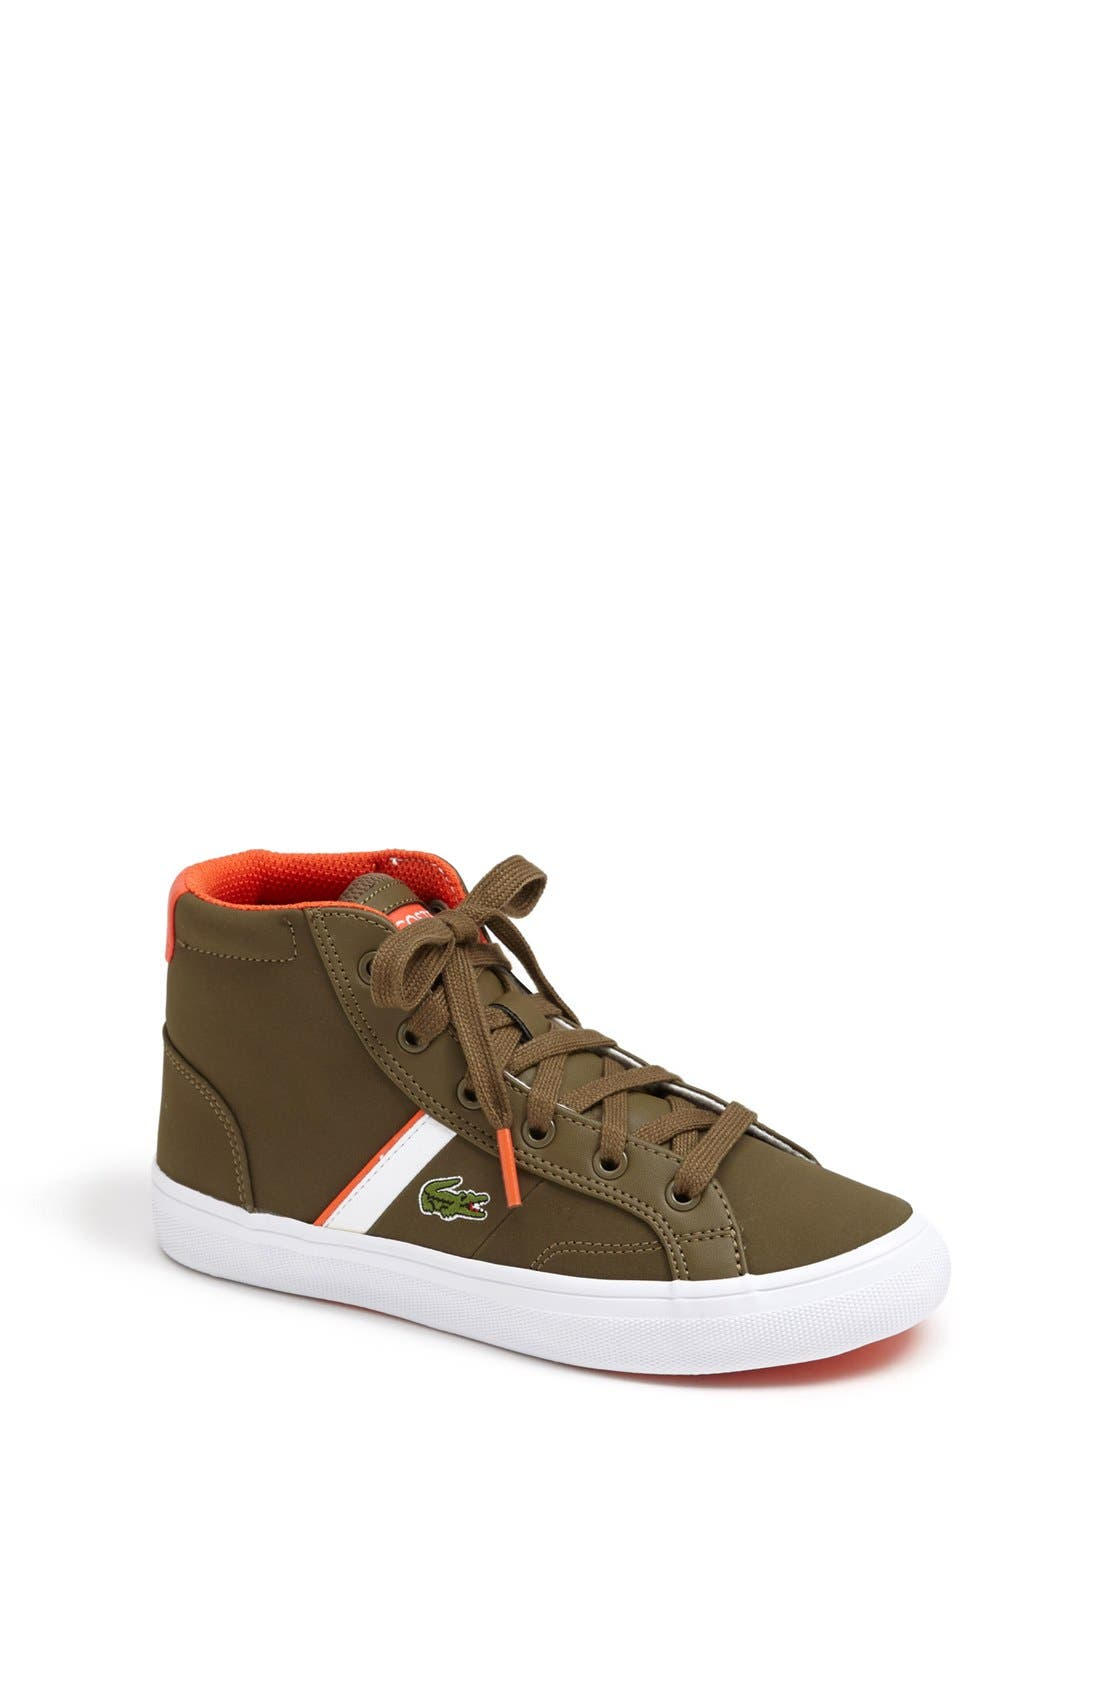 Alternate Image 1 Selected - Lacoste 'Fairlead' High Top Sneaker (Toddler, Little Kid & Big Kid)